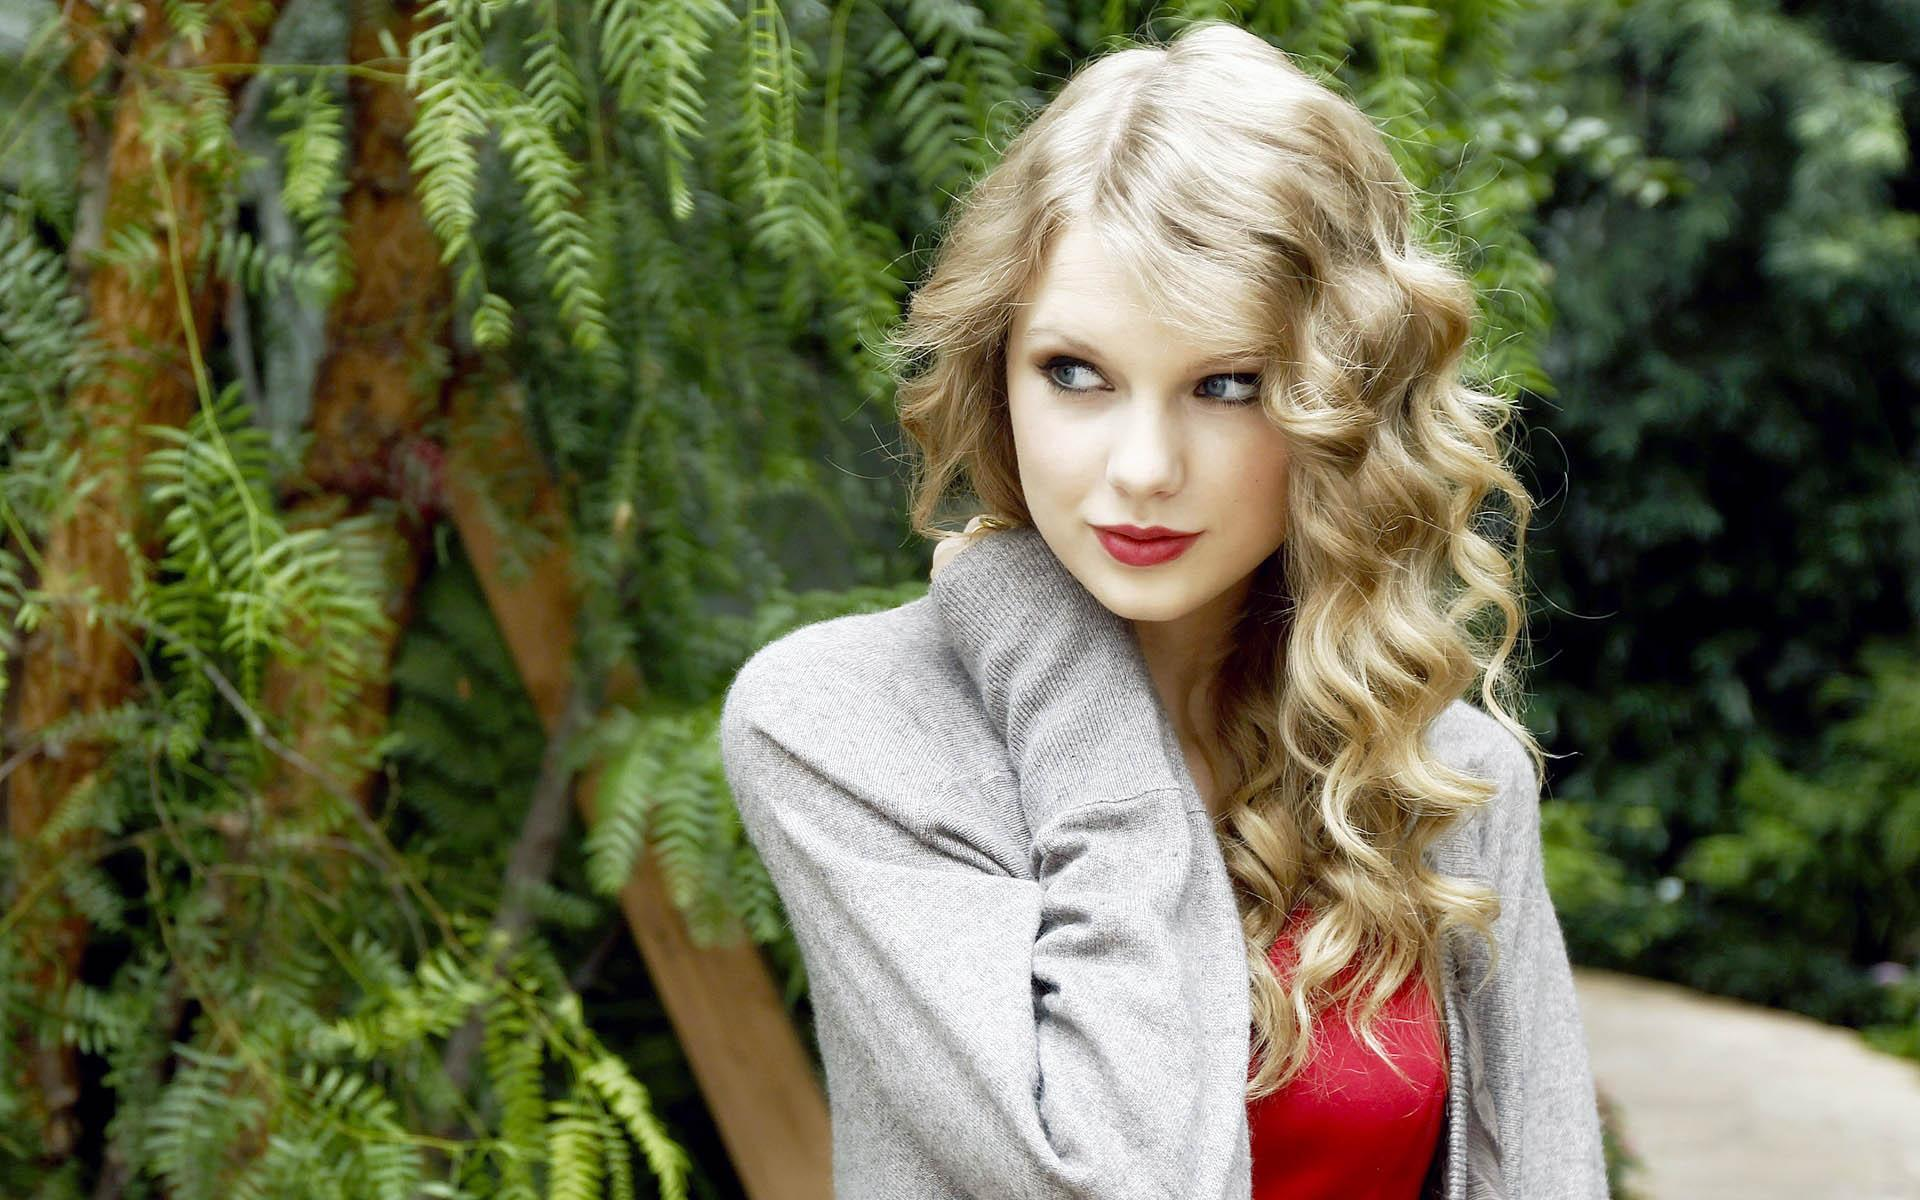 Taylor Swift Backgrounds Wallpaper